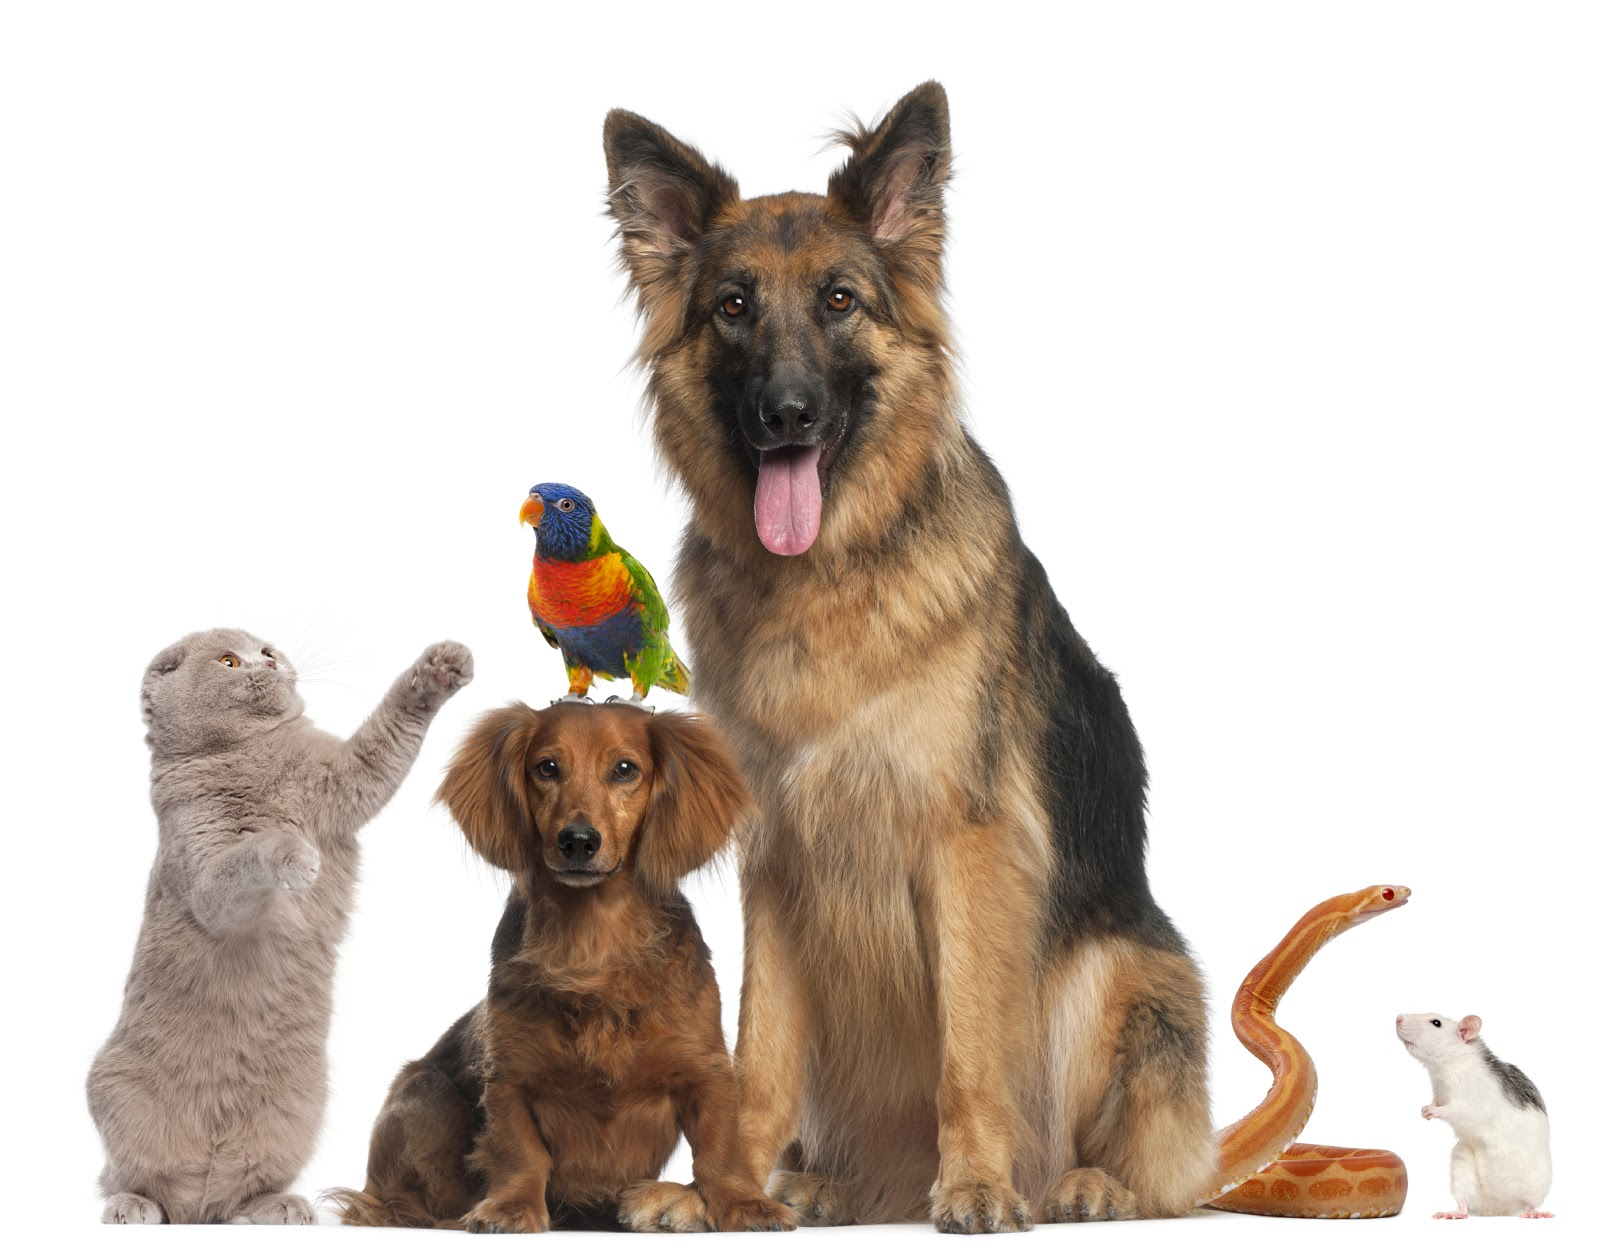 9 Reasons You Should Definitely Adopt a Pet - Goodnet